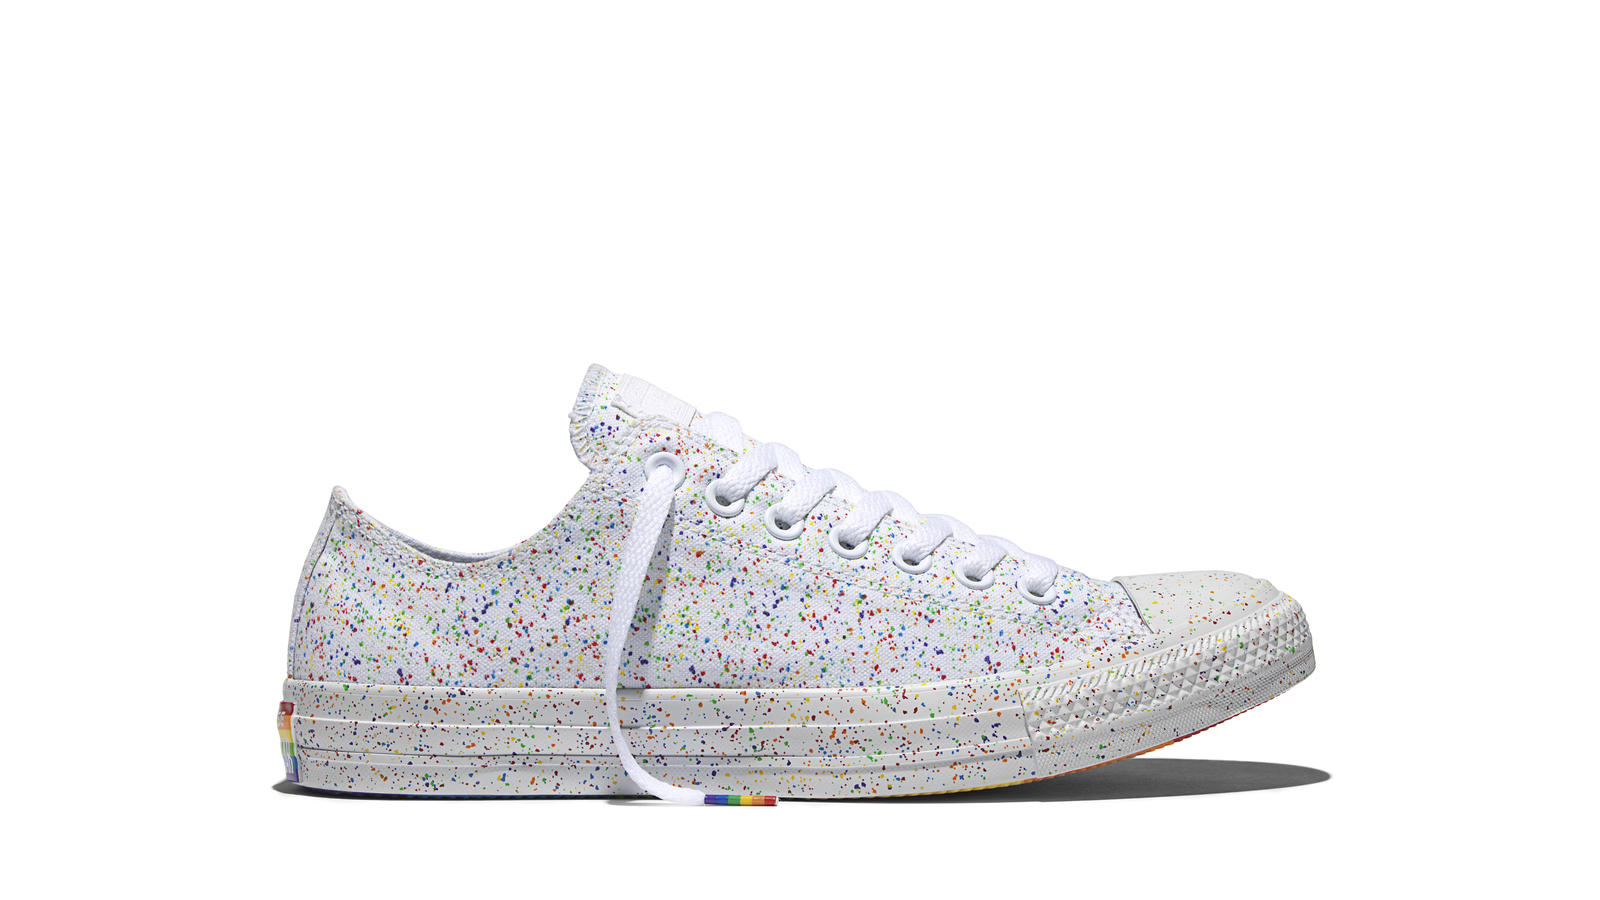 c2ea74964c1c THE 2016 CONVERSE PRIDE COLLECTION CELEBRATES THE CREATIVITY OF ALL ...